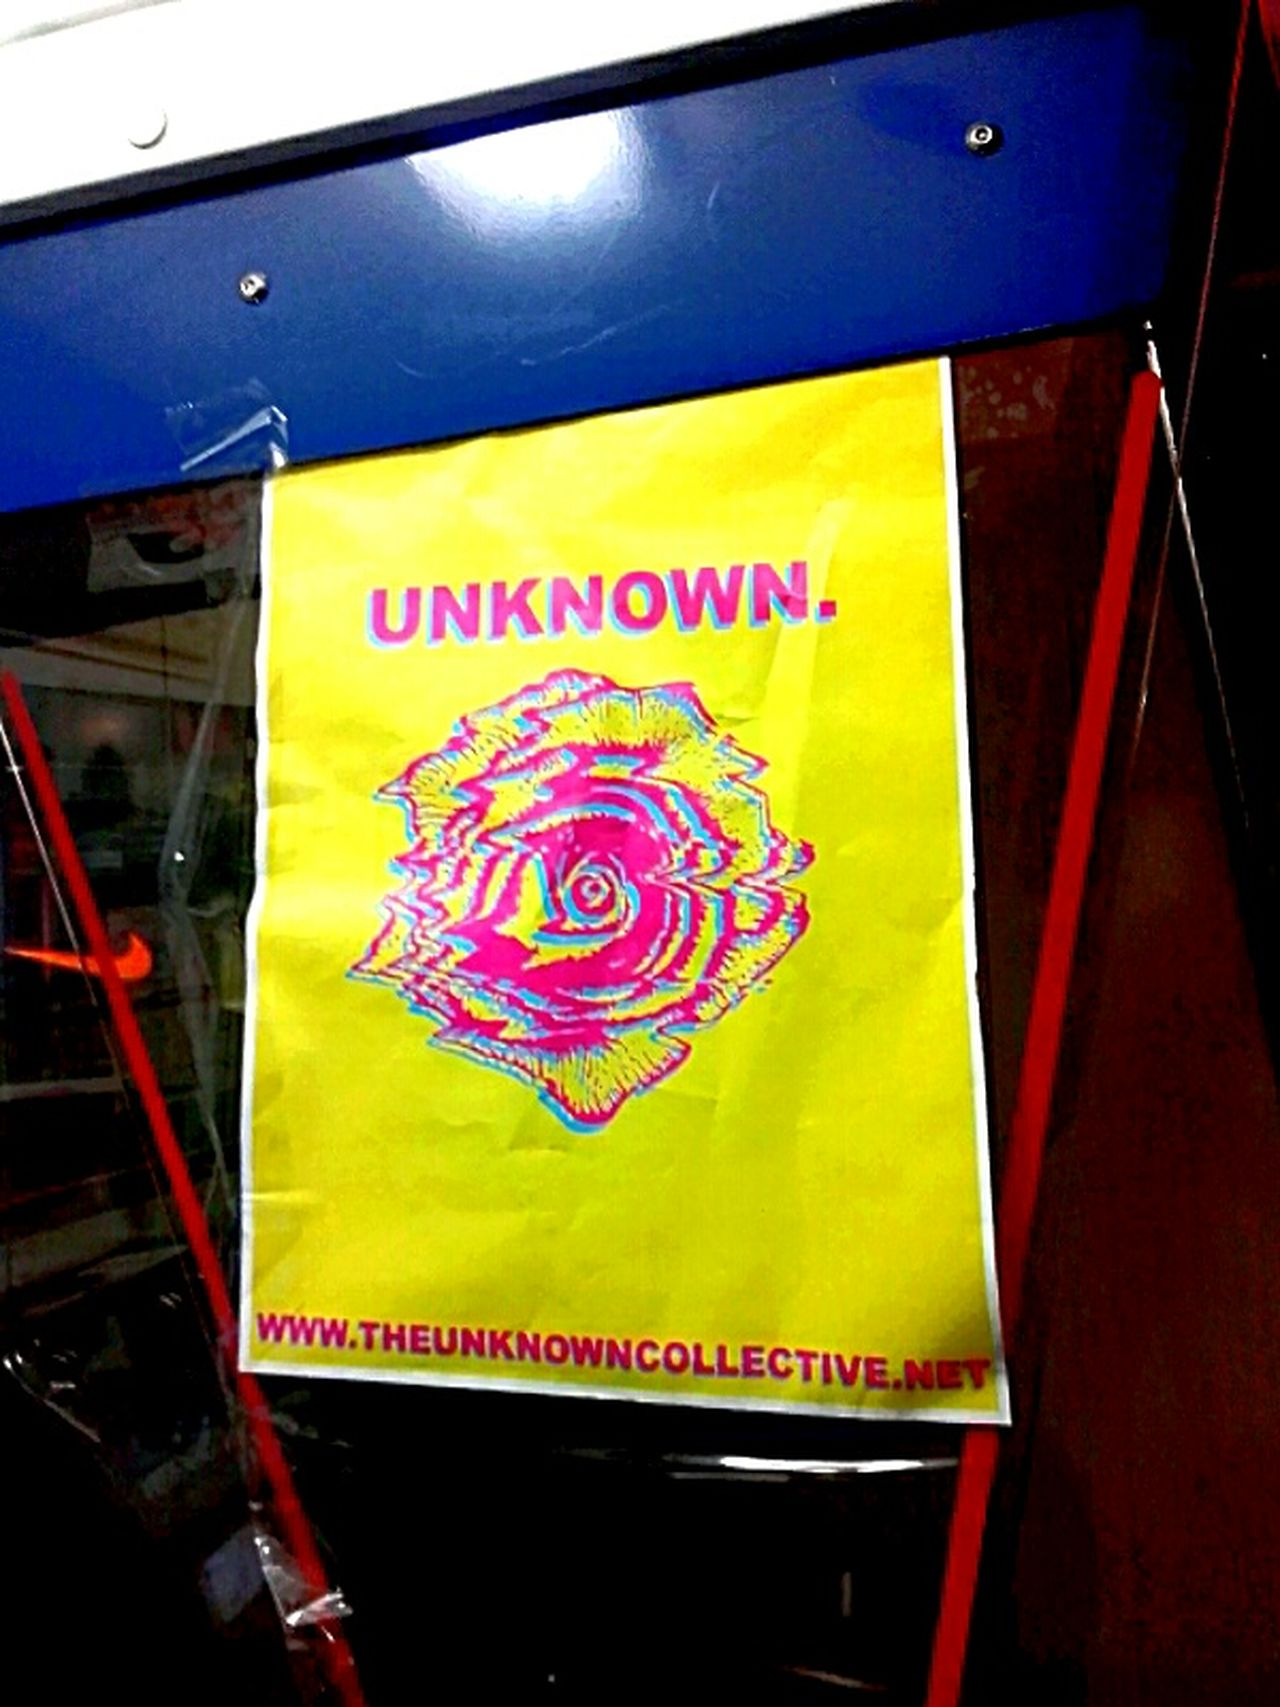 Unknown Poster Poster Collection Posters Posterporn Theunknowncollective Postercollection Posterwall Poster Wall Unknown. Unknown! Unknown Photgraphy Unknown Origin ? Destination Unknown Pink&yellow Yellow&pink Notice Pink & Yellow Pink And Yellow ?? ? ? ? ? Destinationunknown What The F**k, Is This ? Poster!